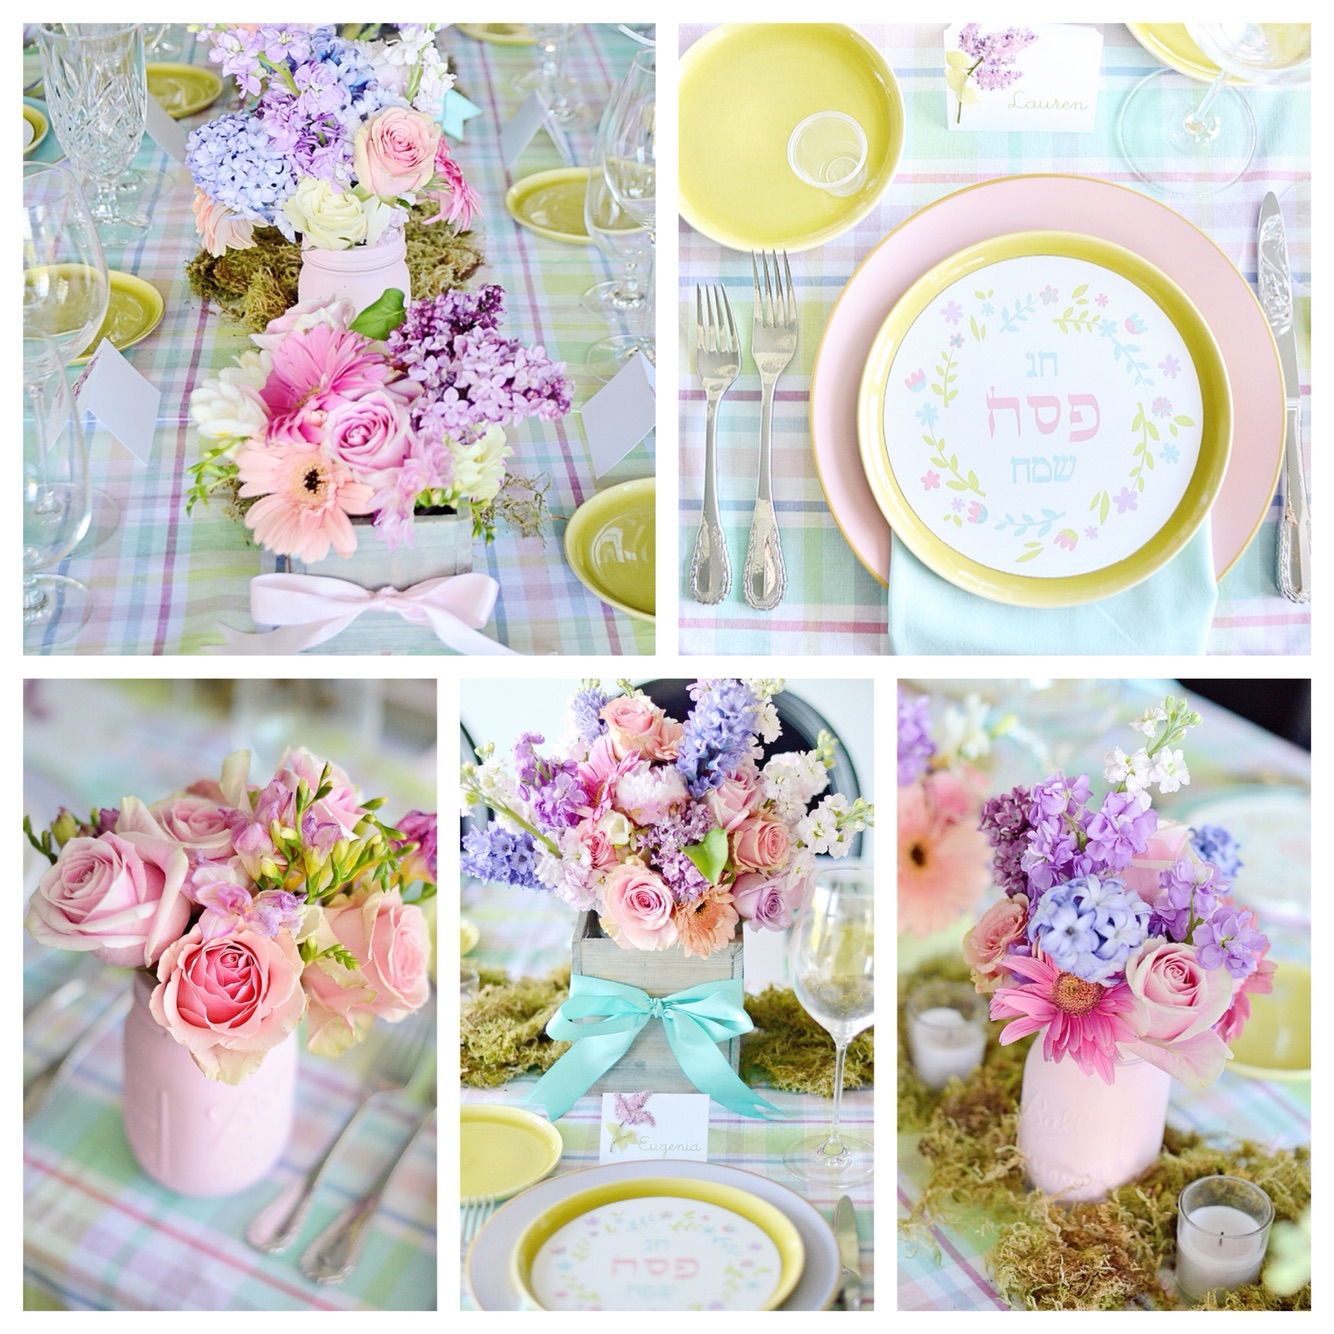 Pink mason jar party and wedding decor.